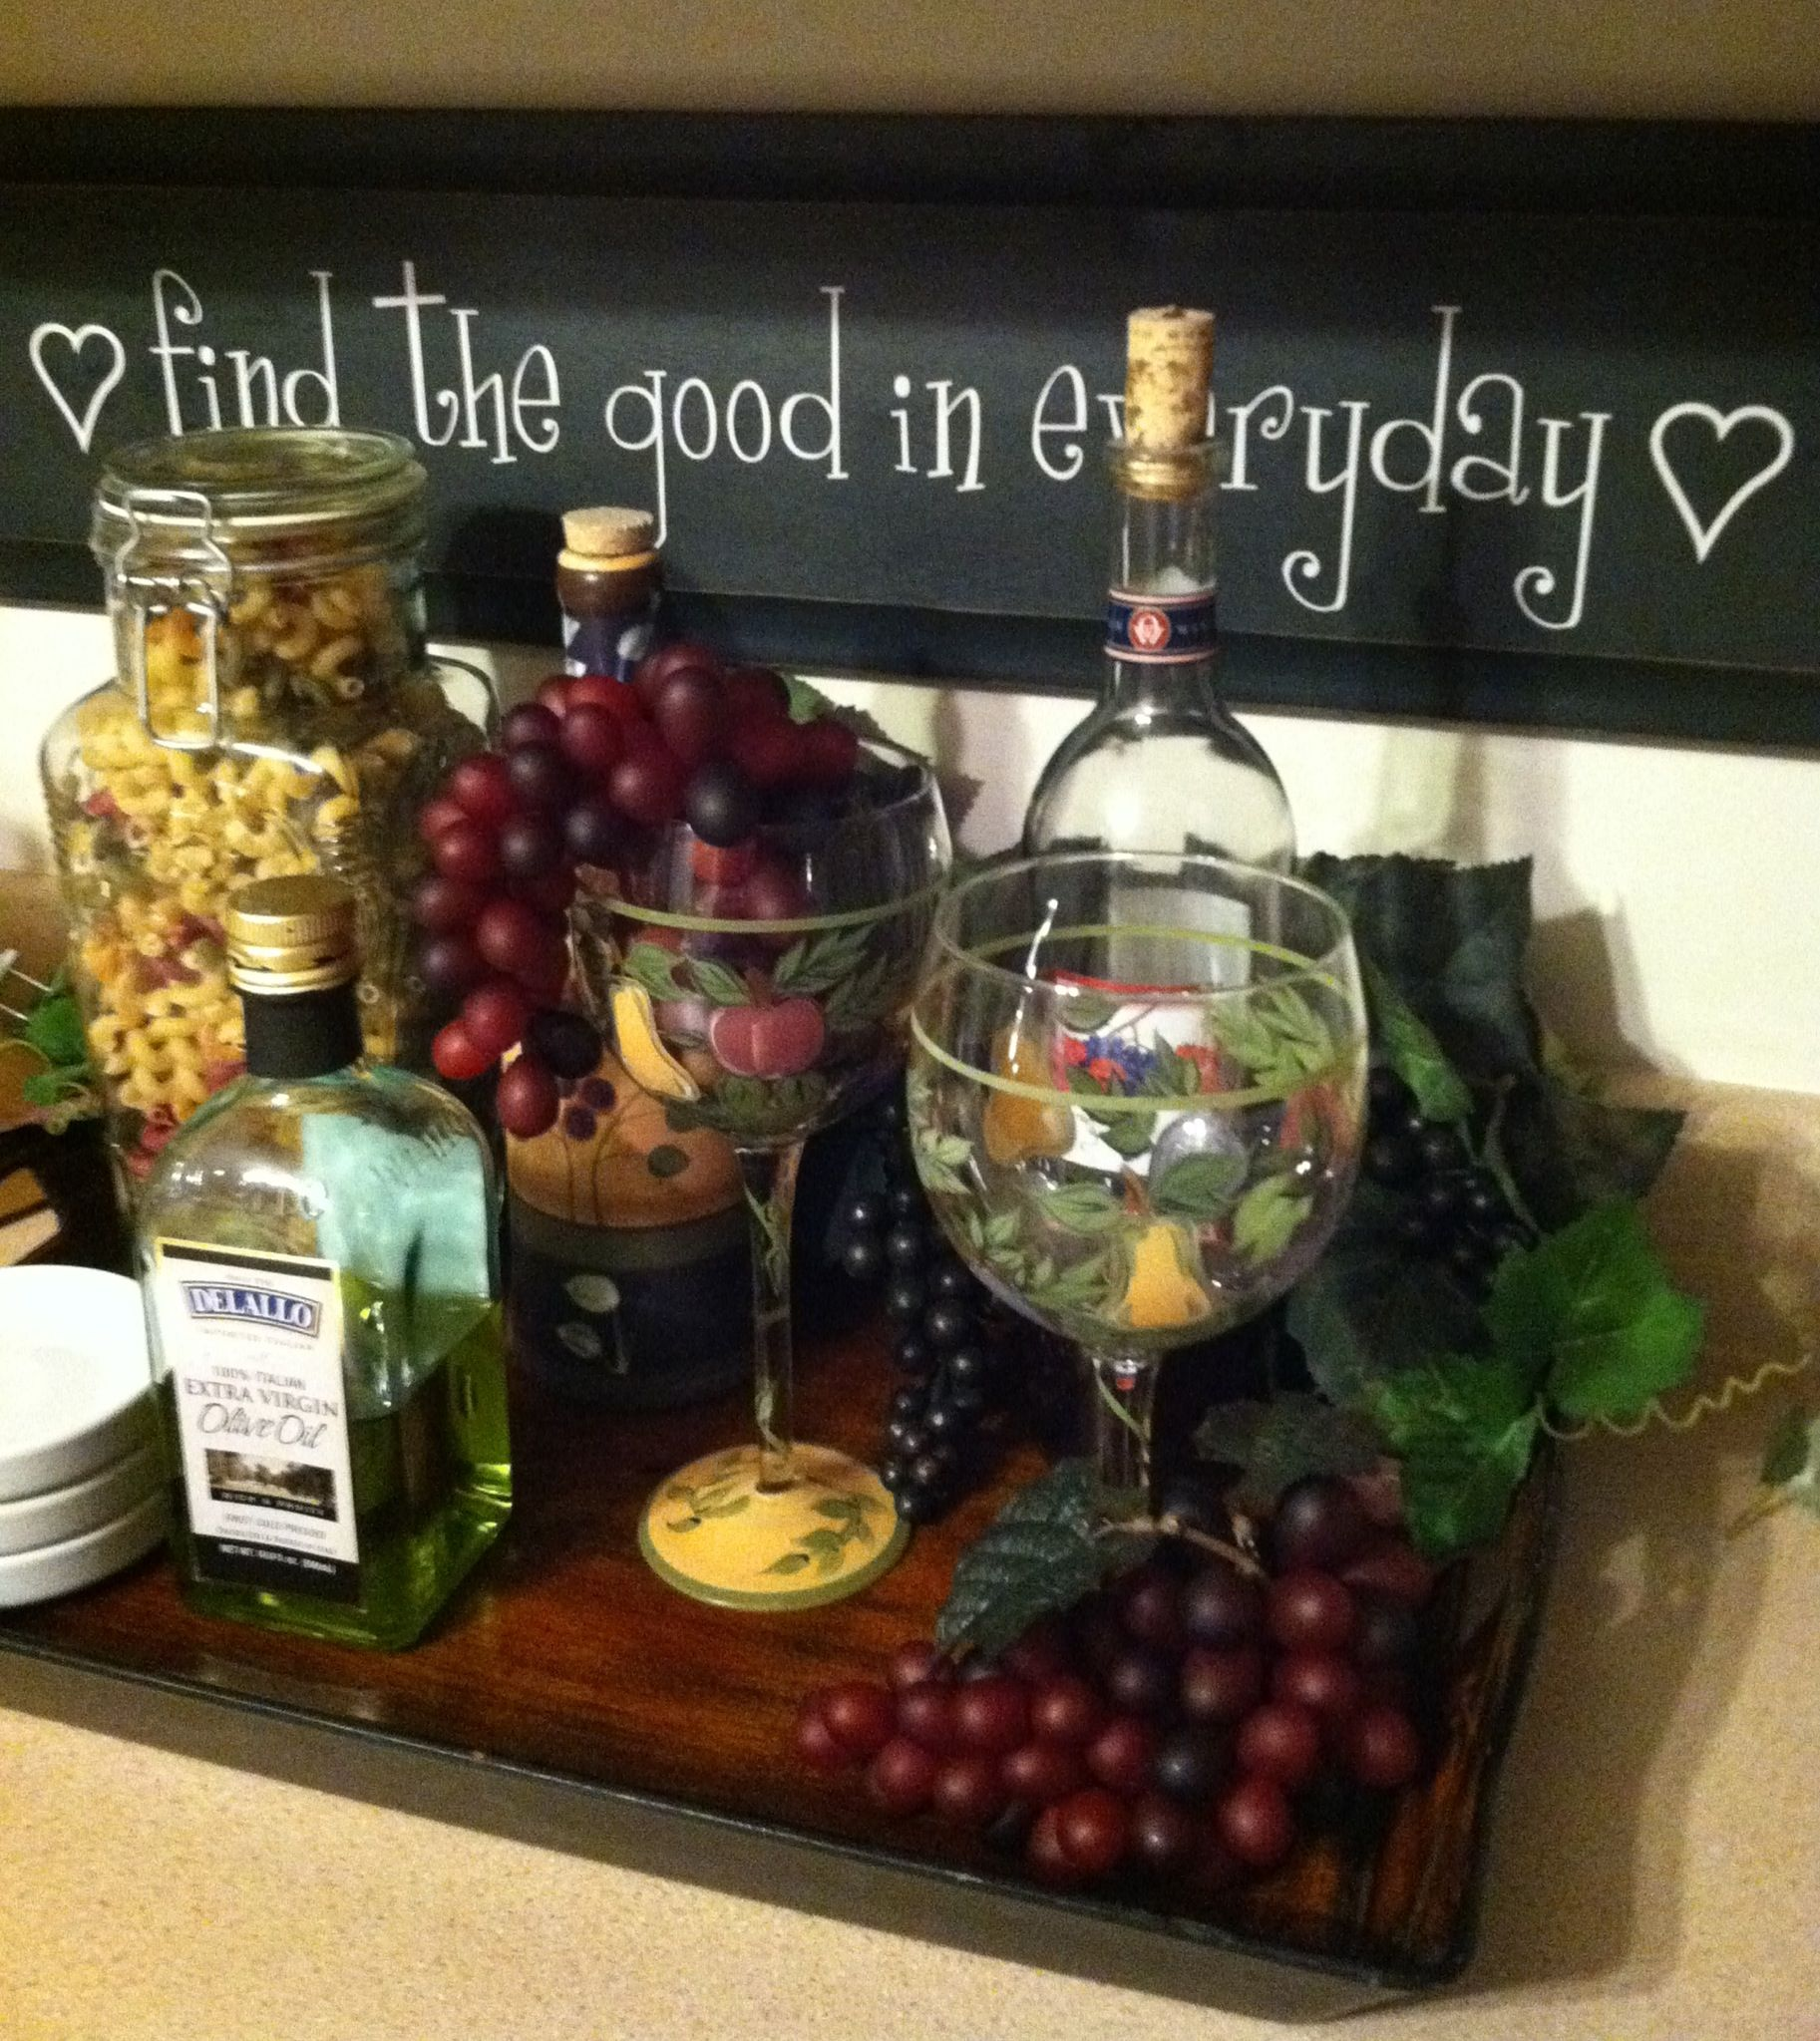 Tray fake cheese and grapes with wine bottles Kitchen decor  Tuscan kitchen decor  Pinterest